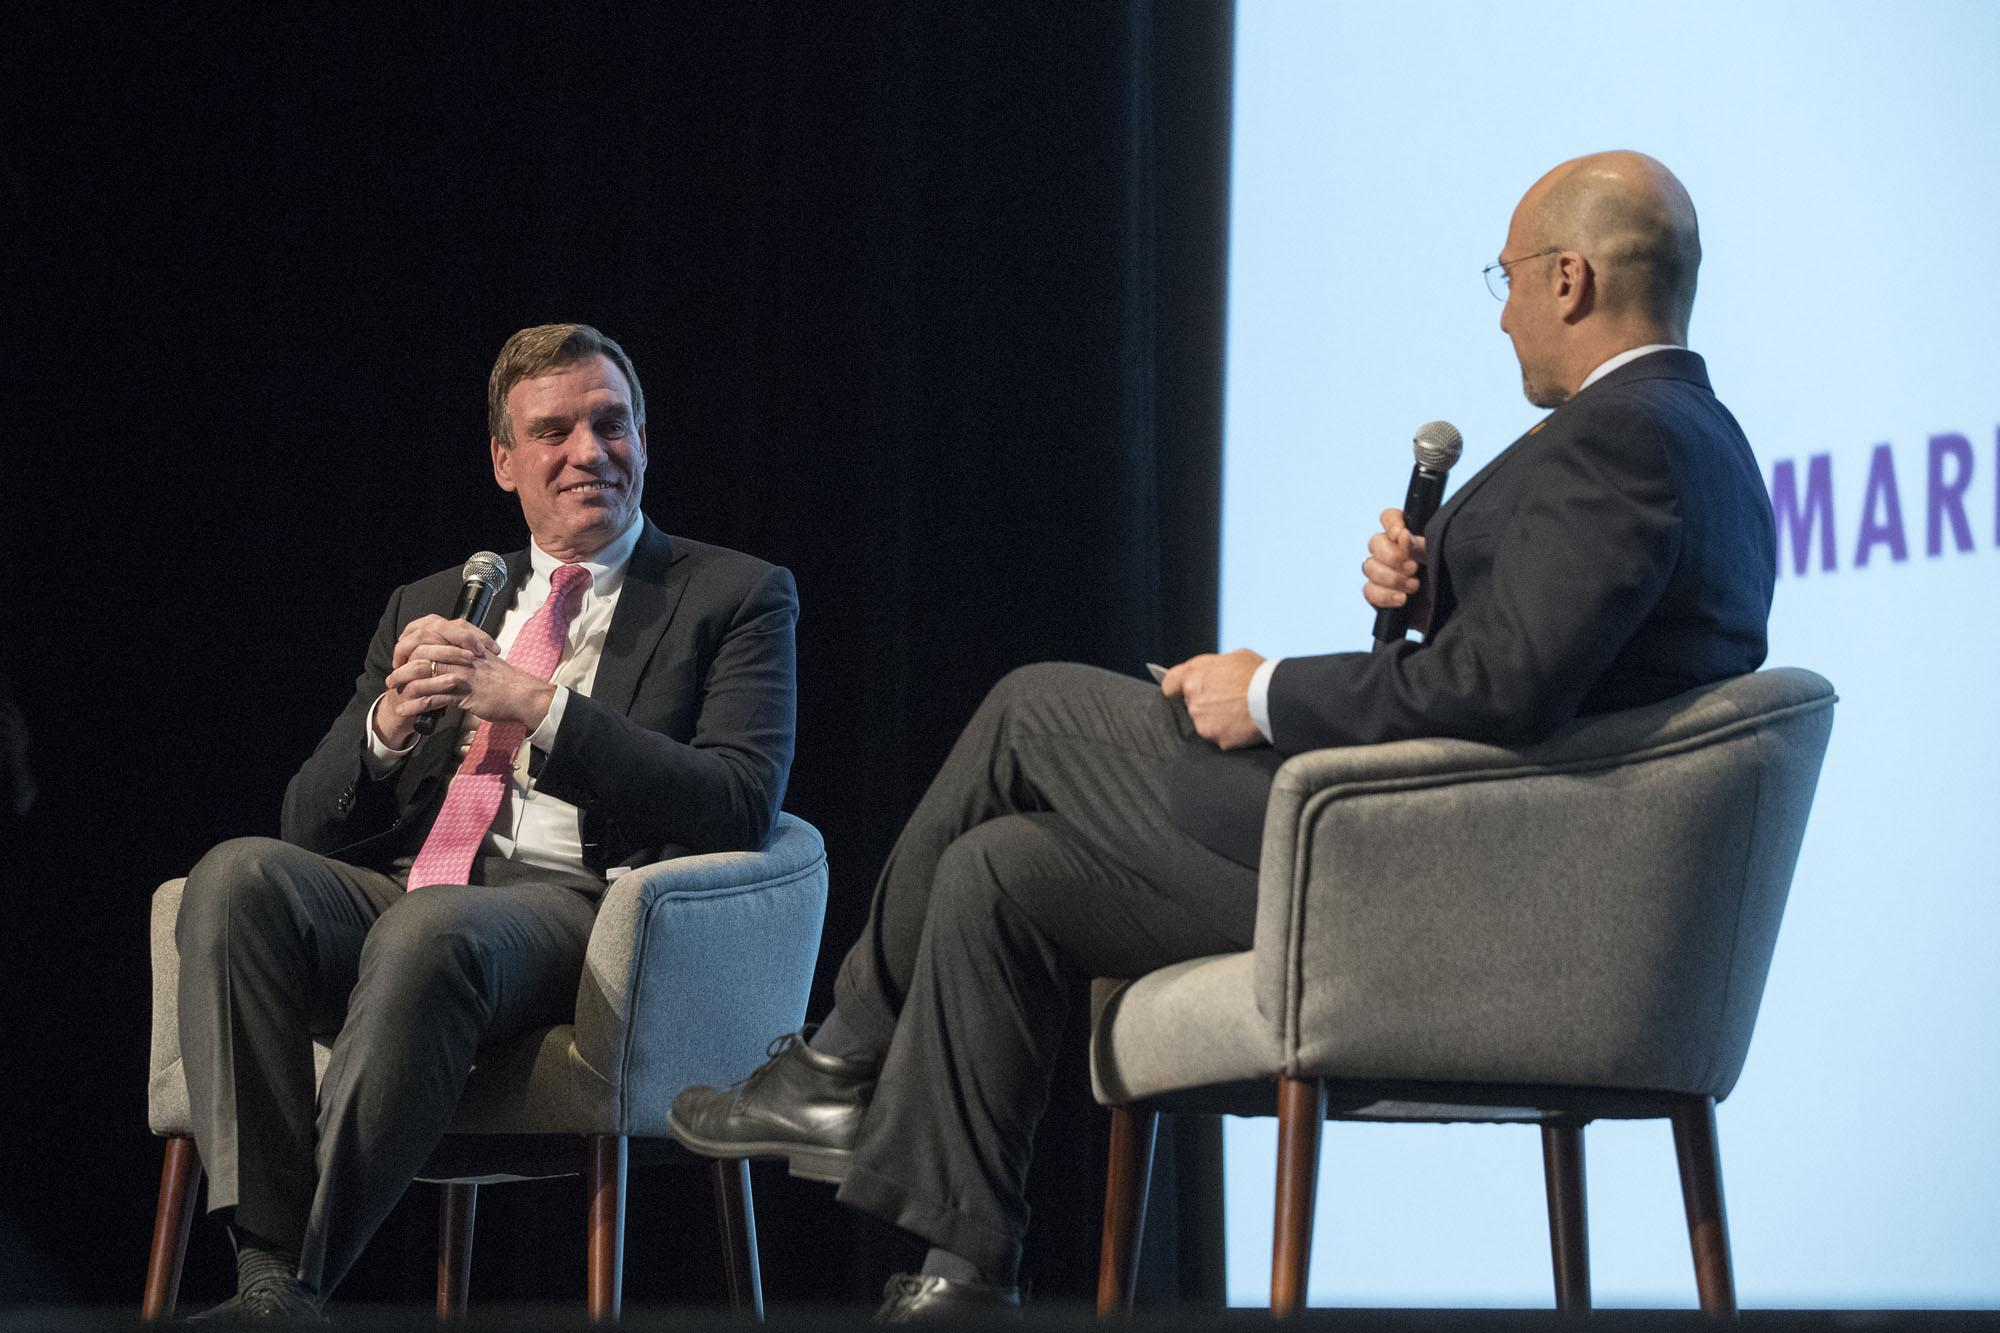 Virginia Sen. Mark Warner, left, discusses the first 100 days of the Trump presidency with Miller Center Director and CEO William Antholis.